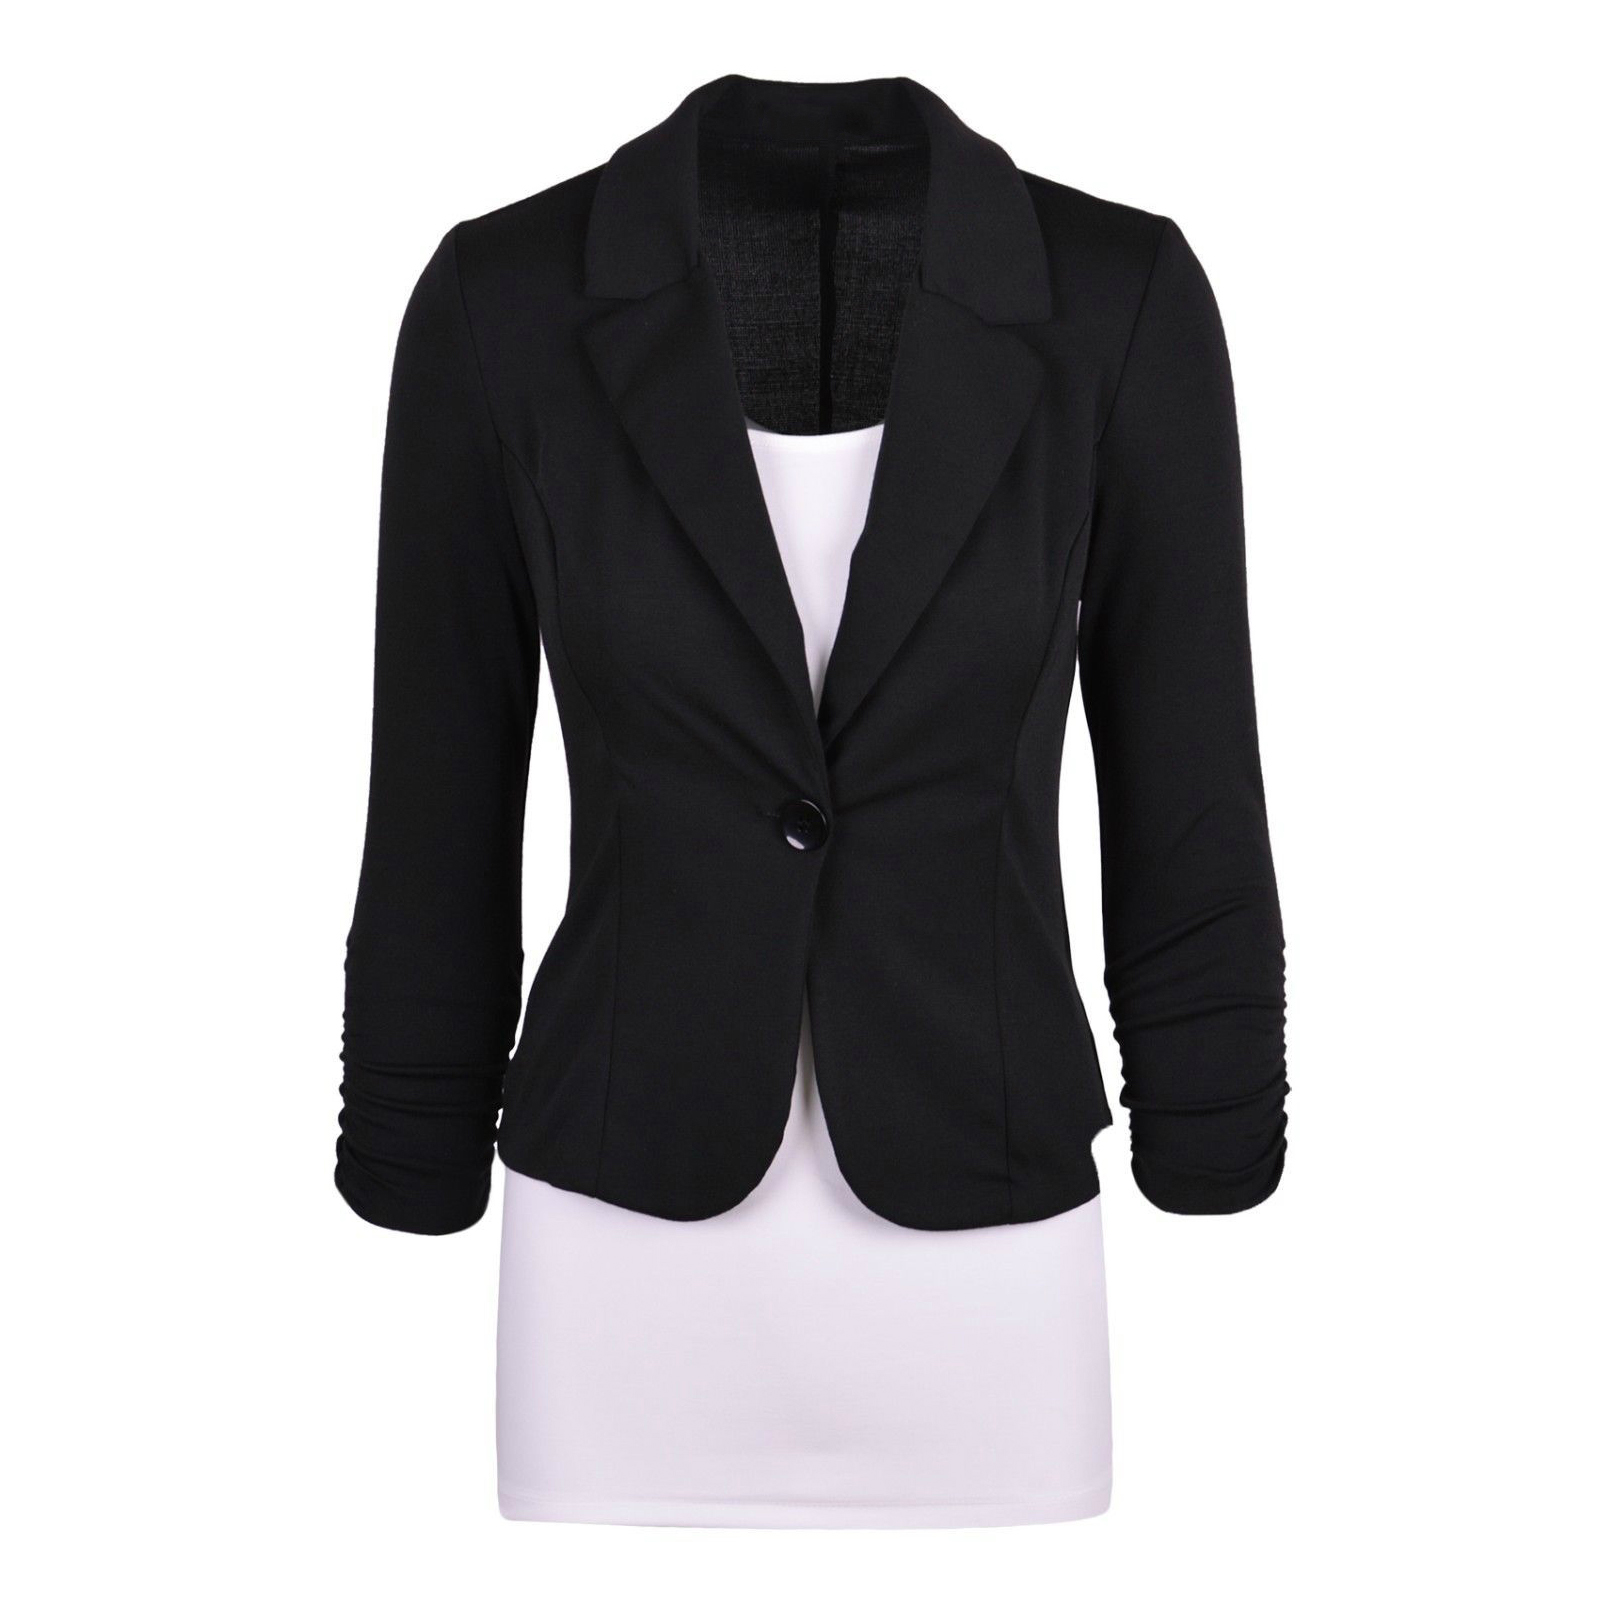 Women's Casual Work Solid Color Knit Blazer Plus Size One Button Jacket